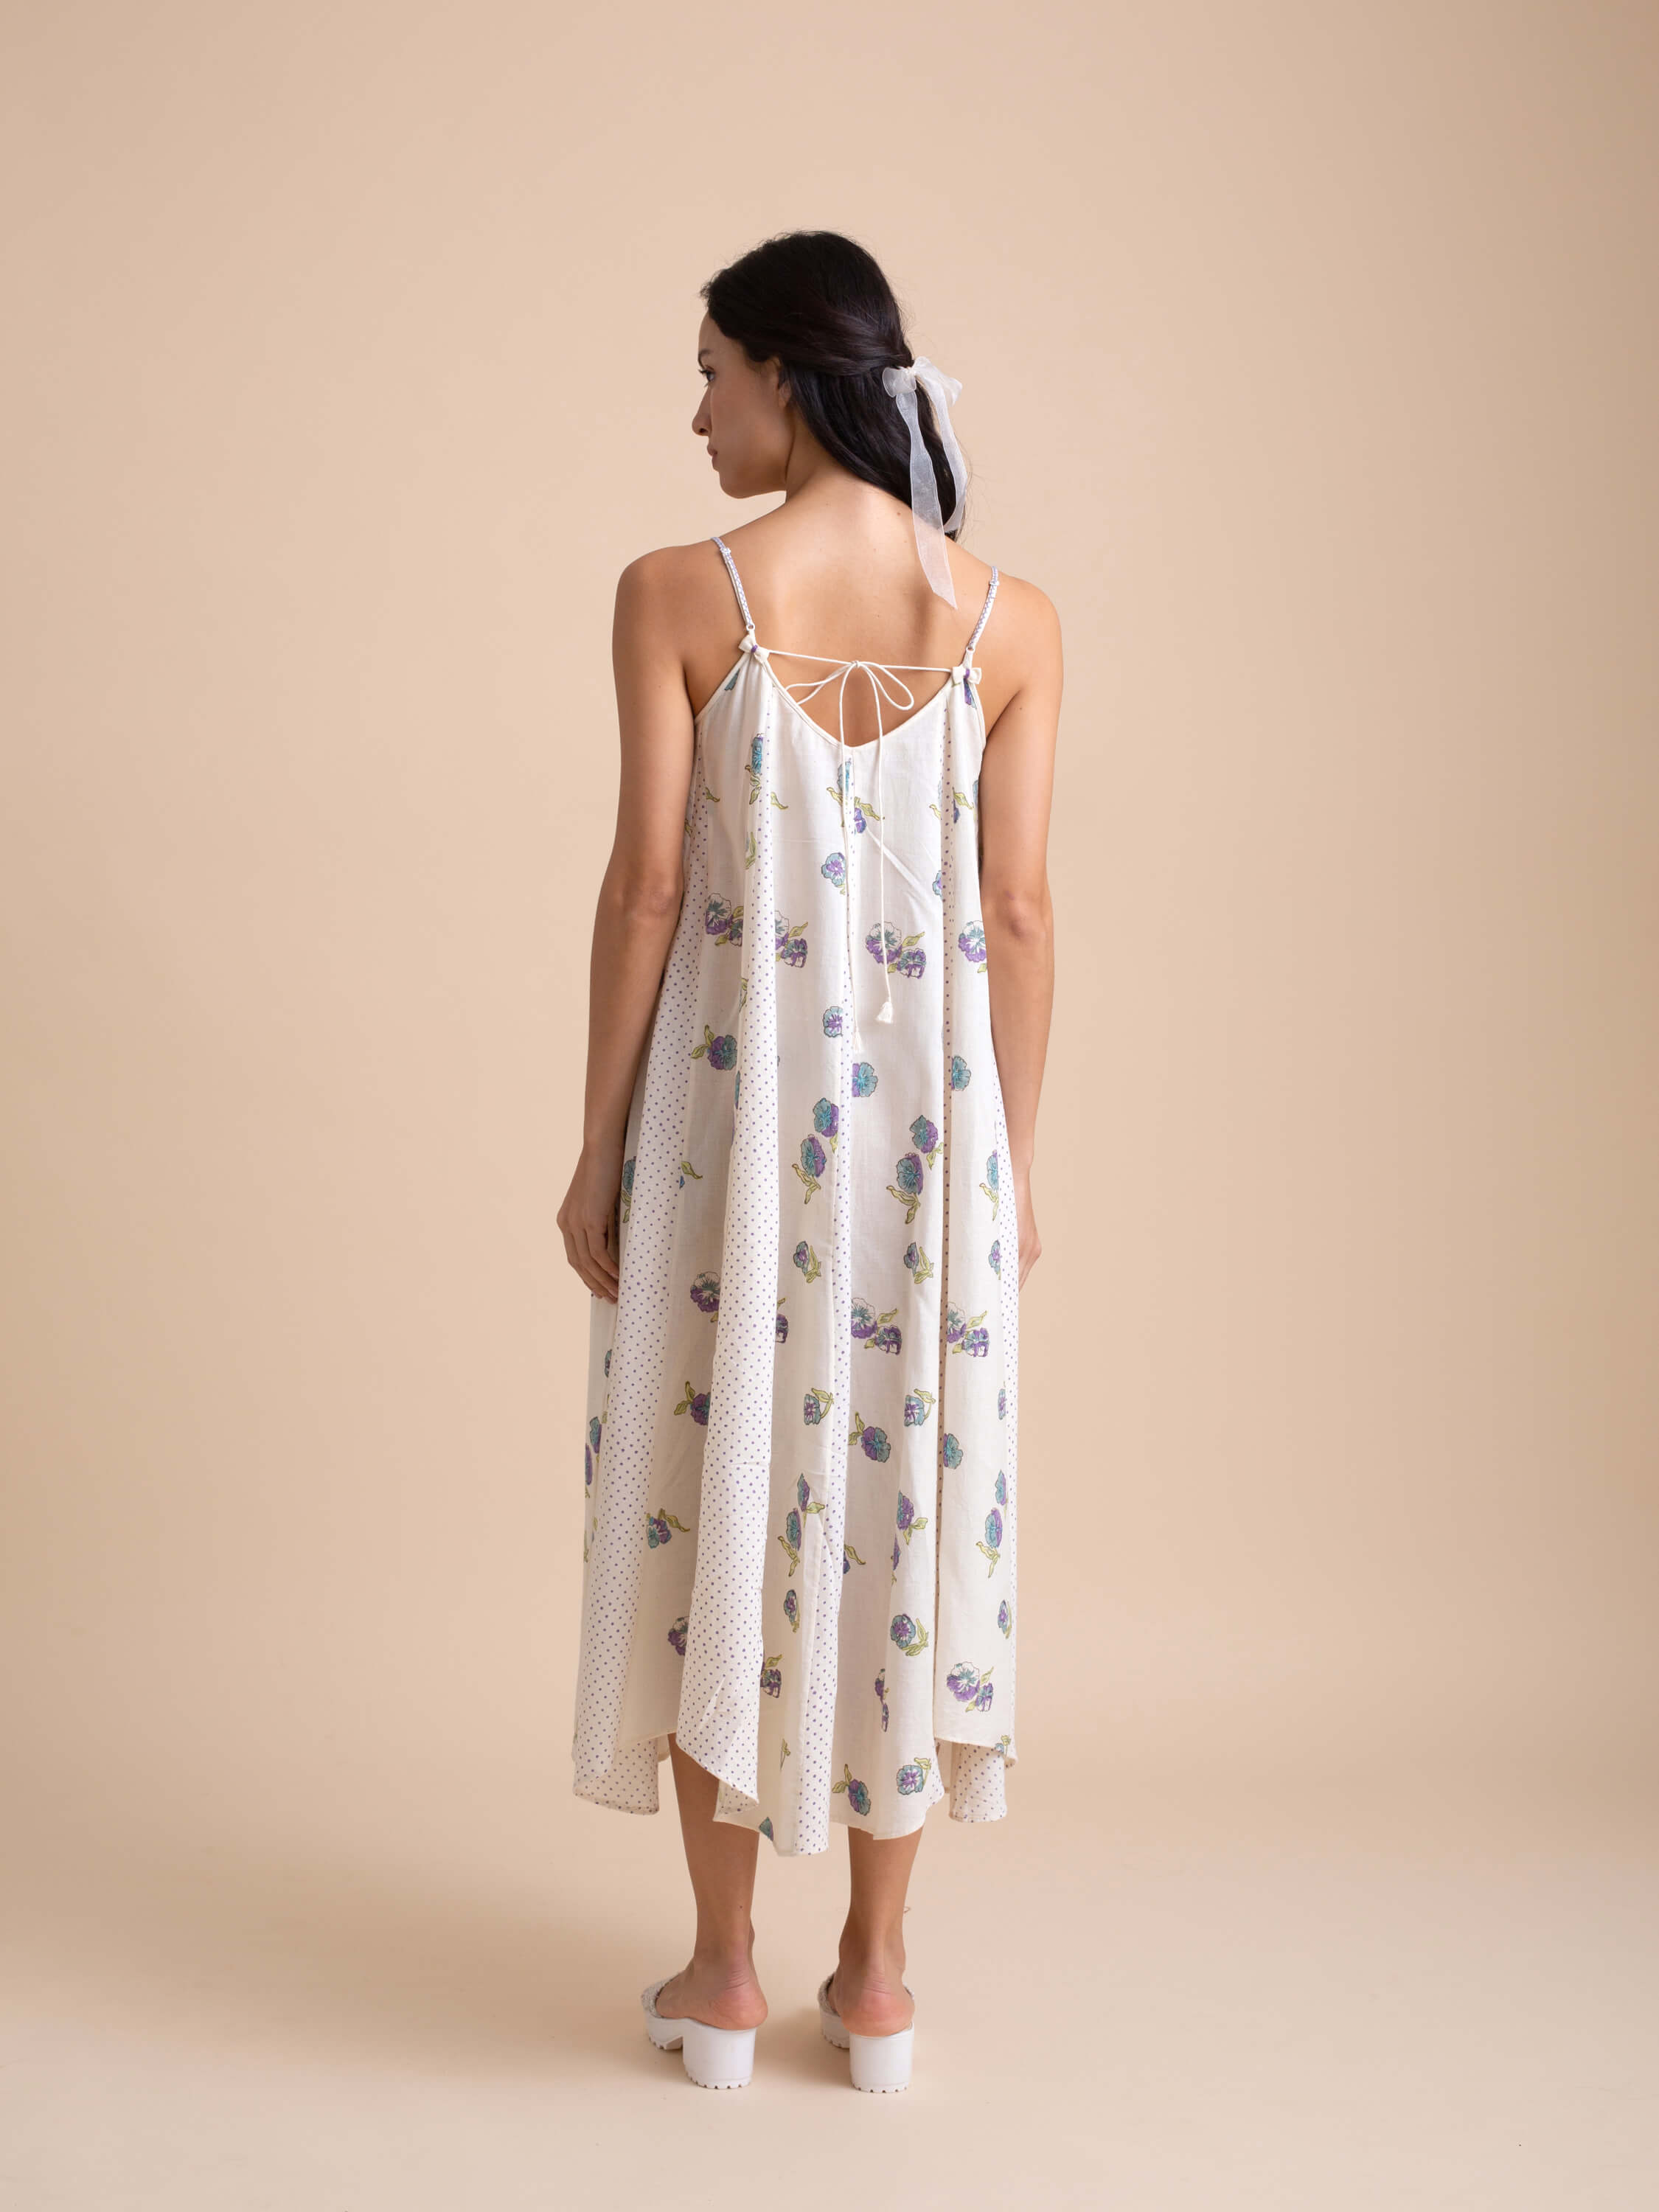 Pansies Tent Dress - BunaStudio